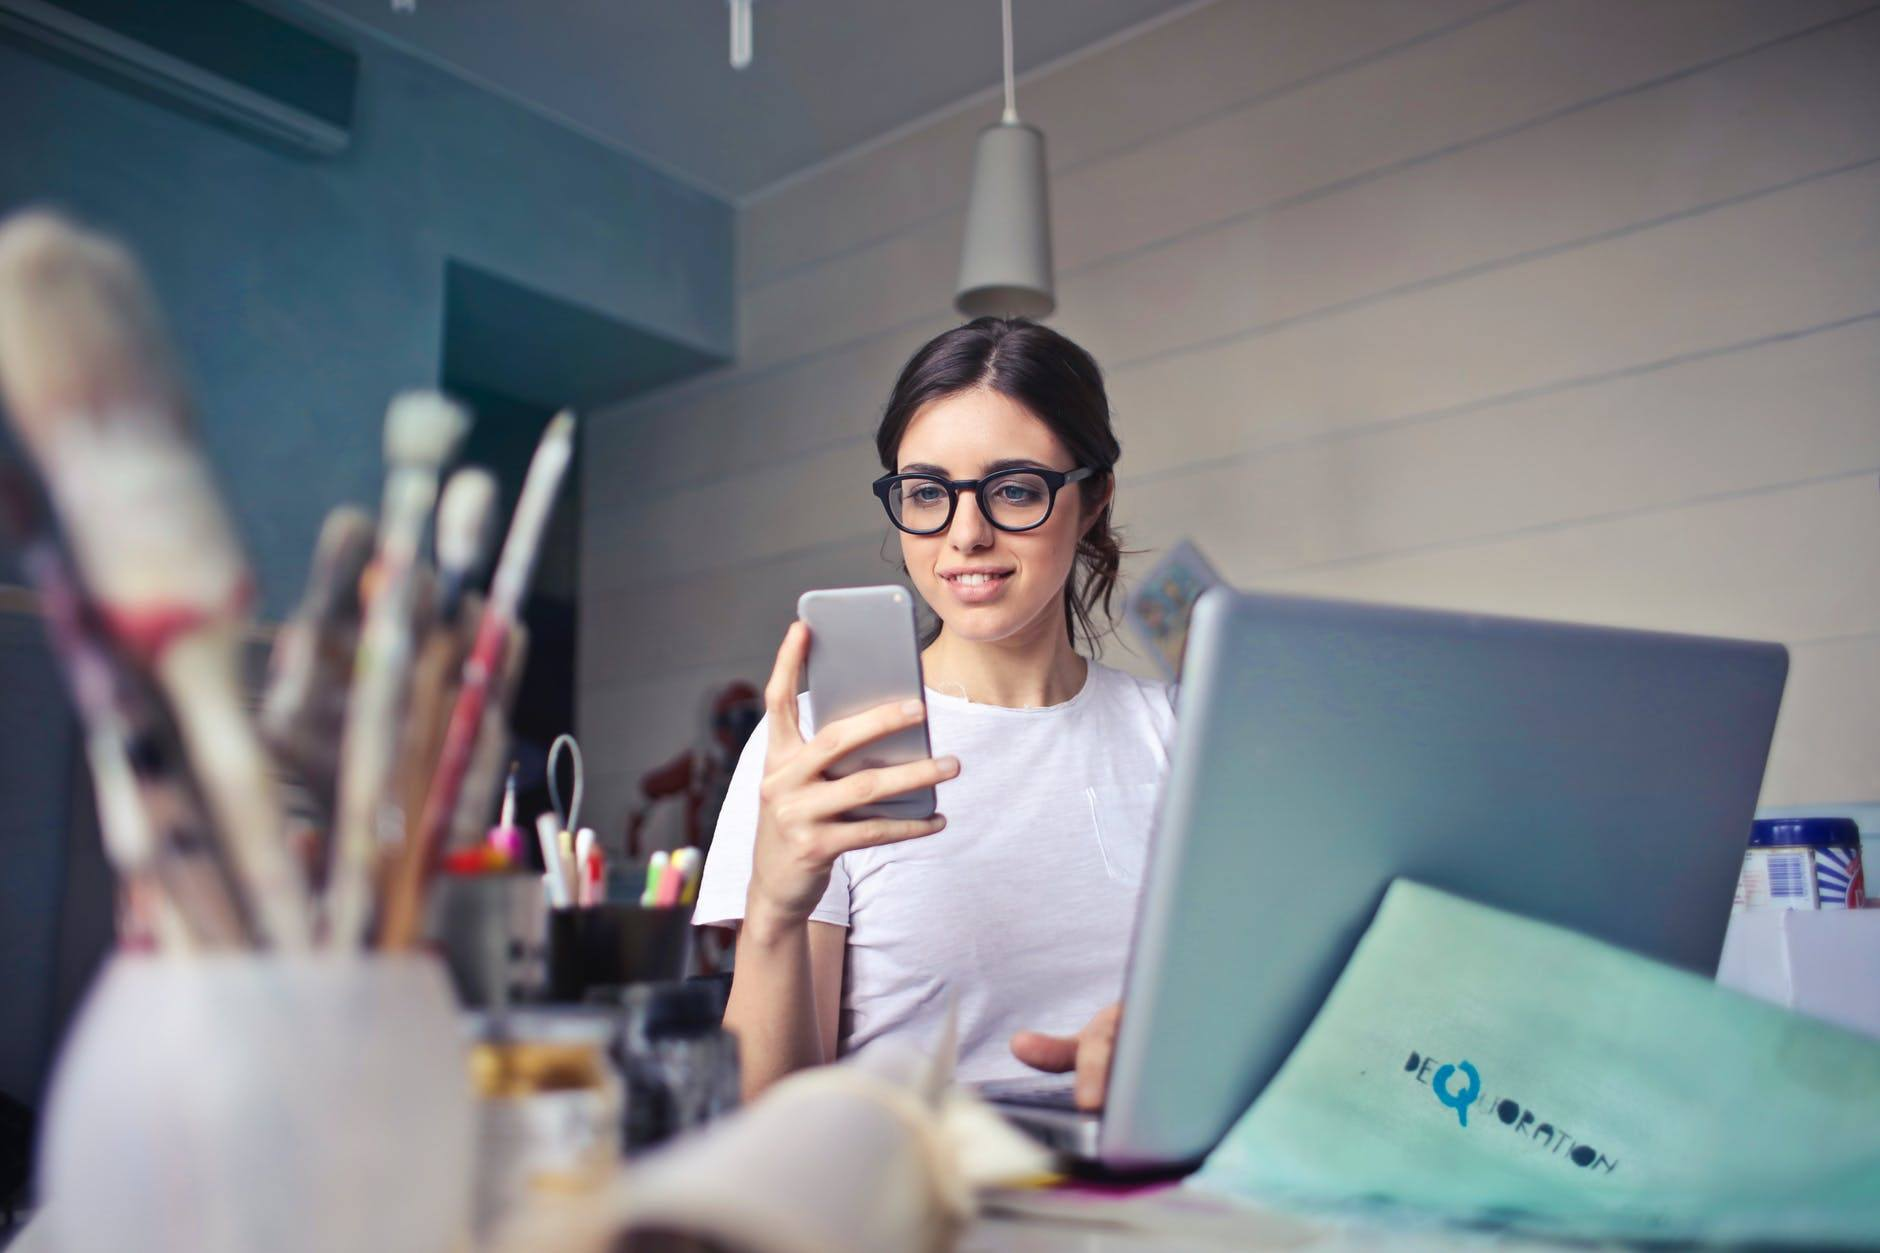 Digital Marketing per le PMI: 10 strategie di base da mettere in pratica subito